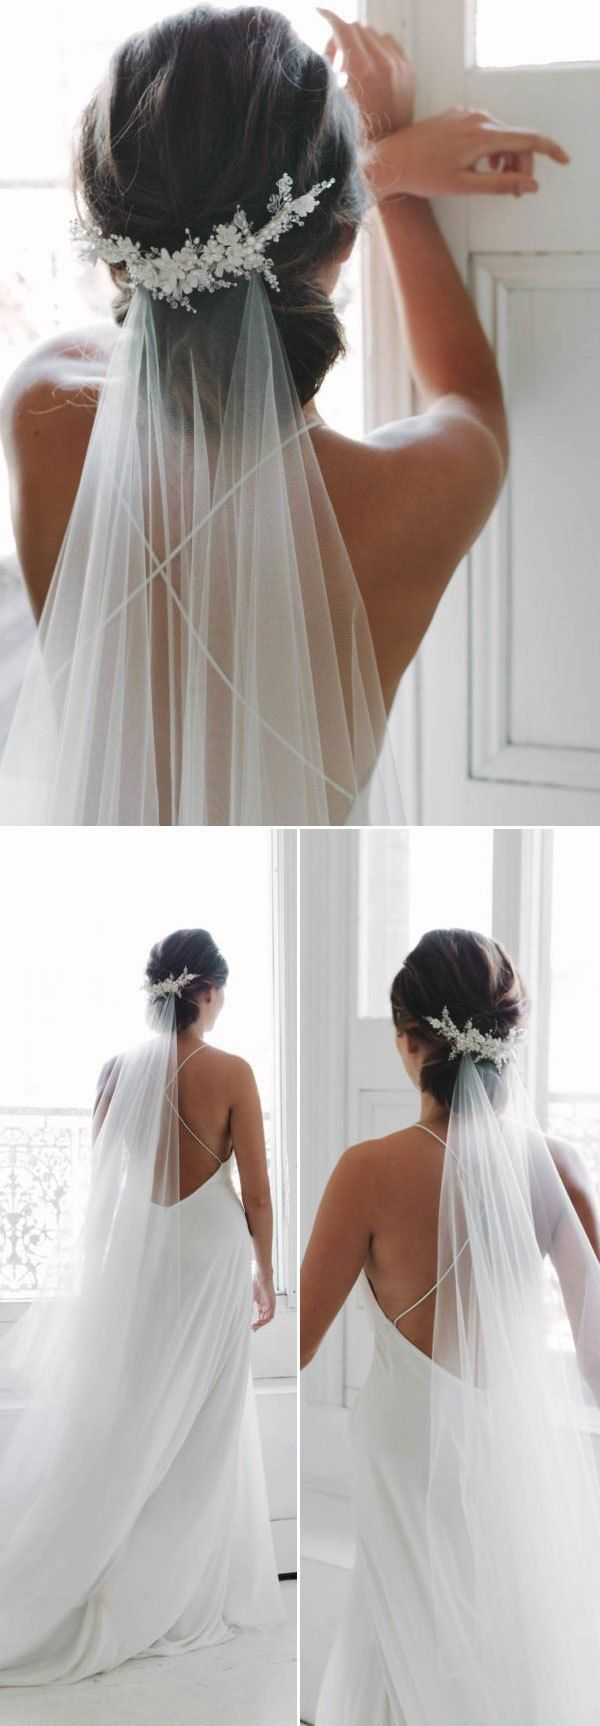 Top wedding hairstyles with veils and accessories gelin